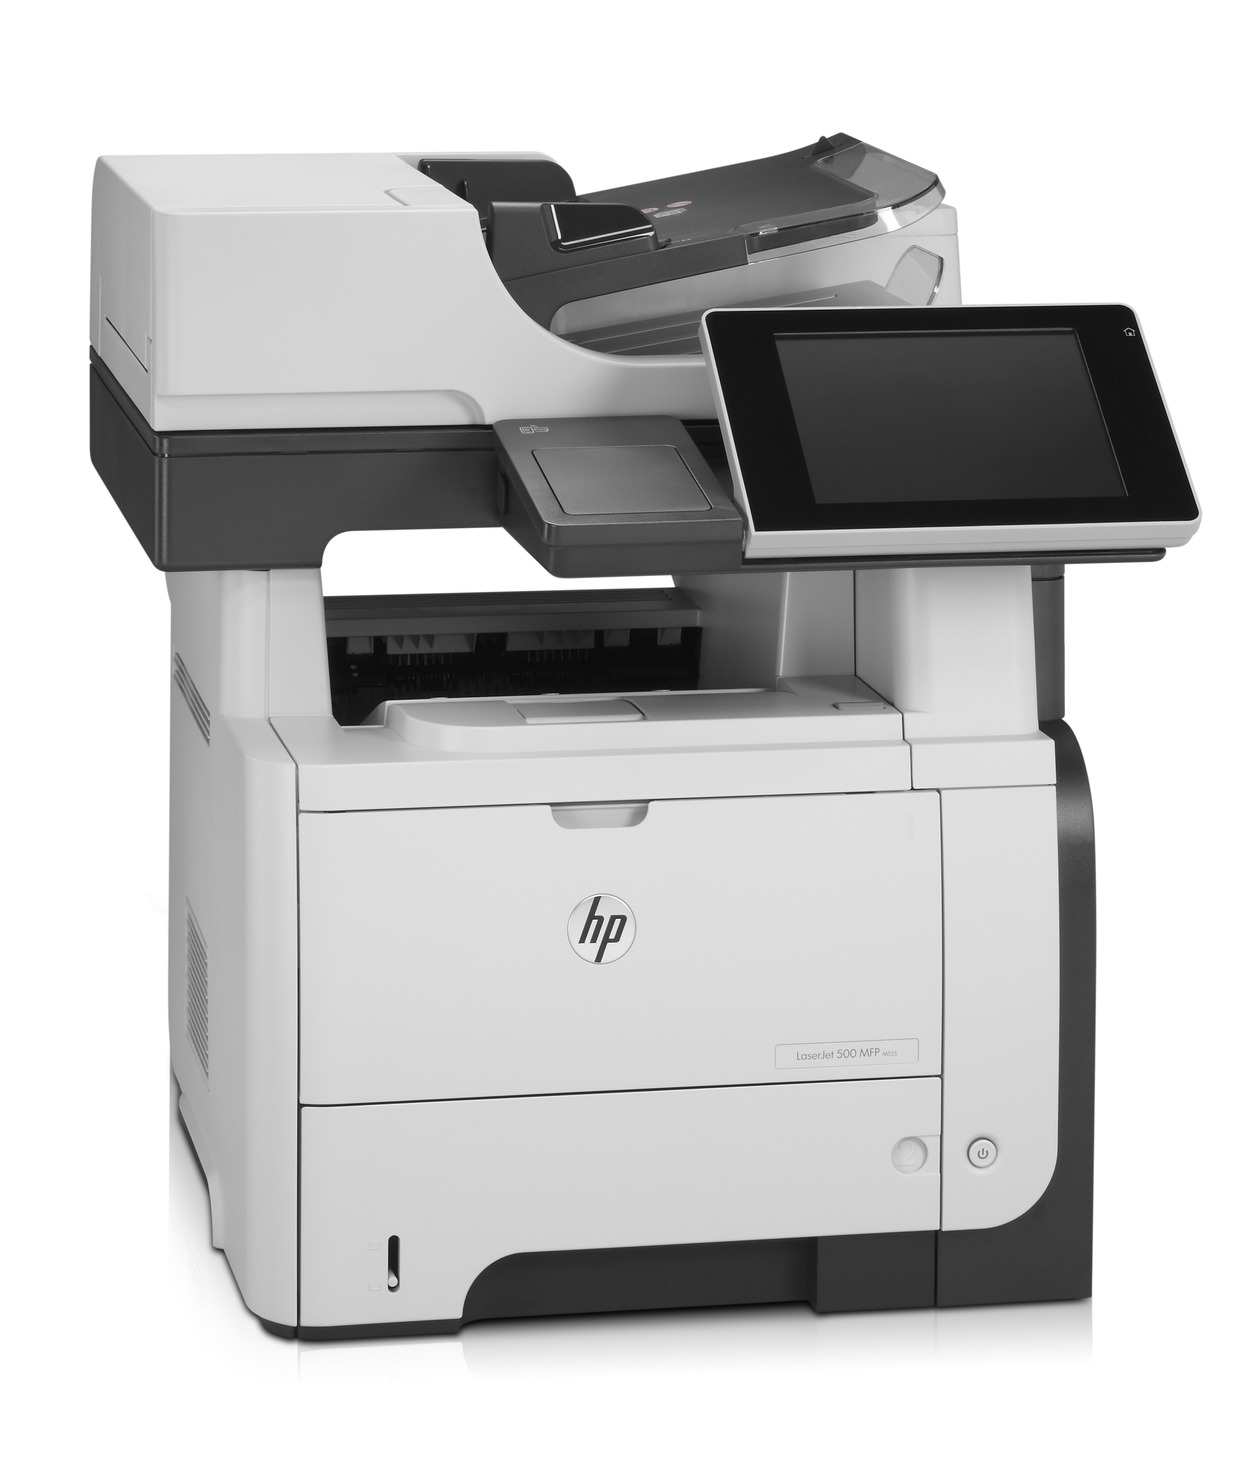 About the HP LaserJet Enterprise 500 MFP M525dn